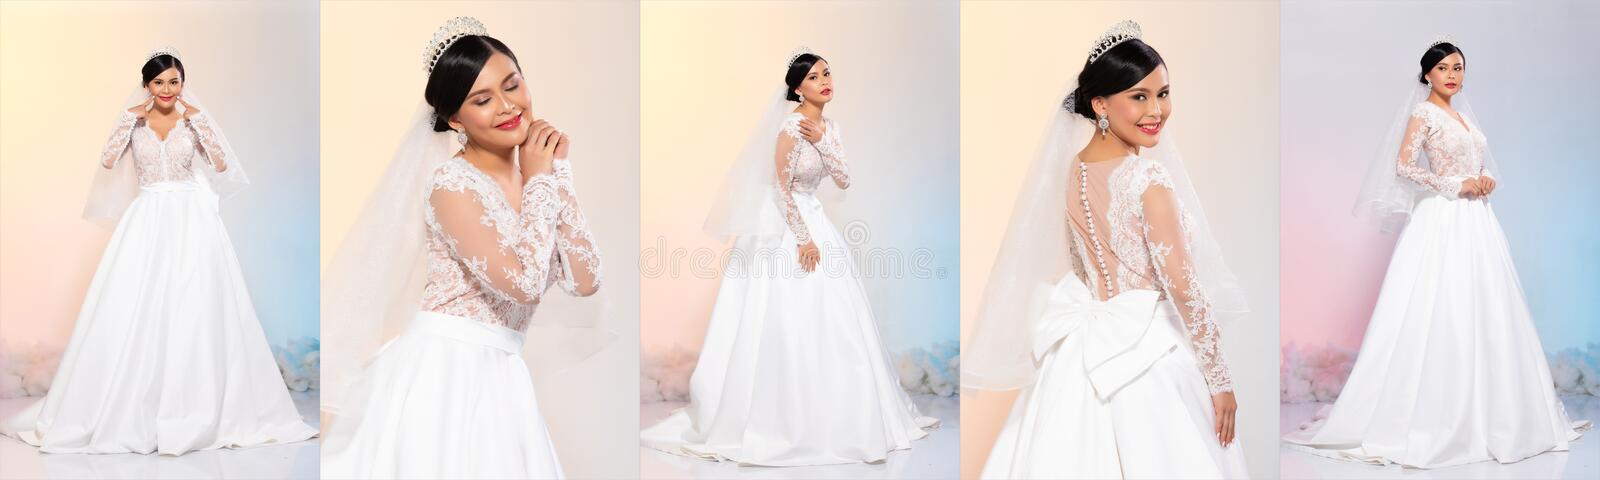 Beautiful cosmetic make up wear White wedding dress in difference poses royalty free stock image